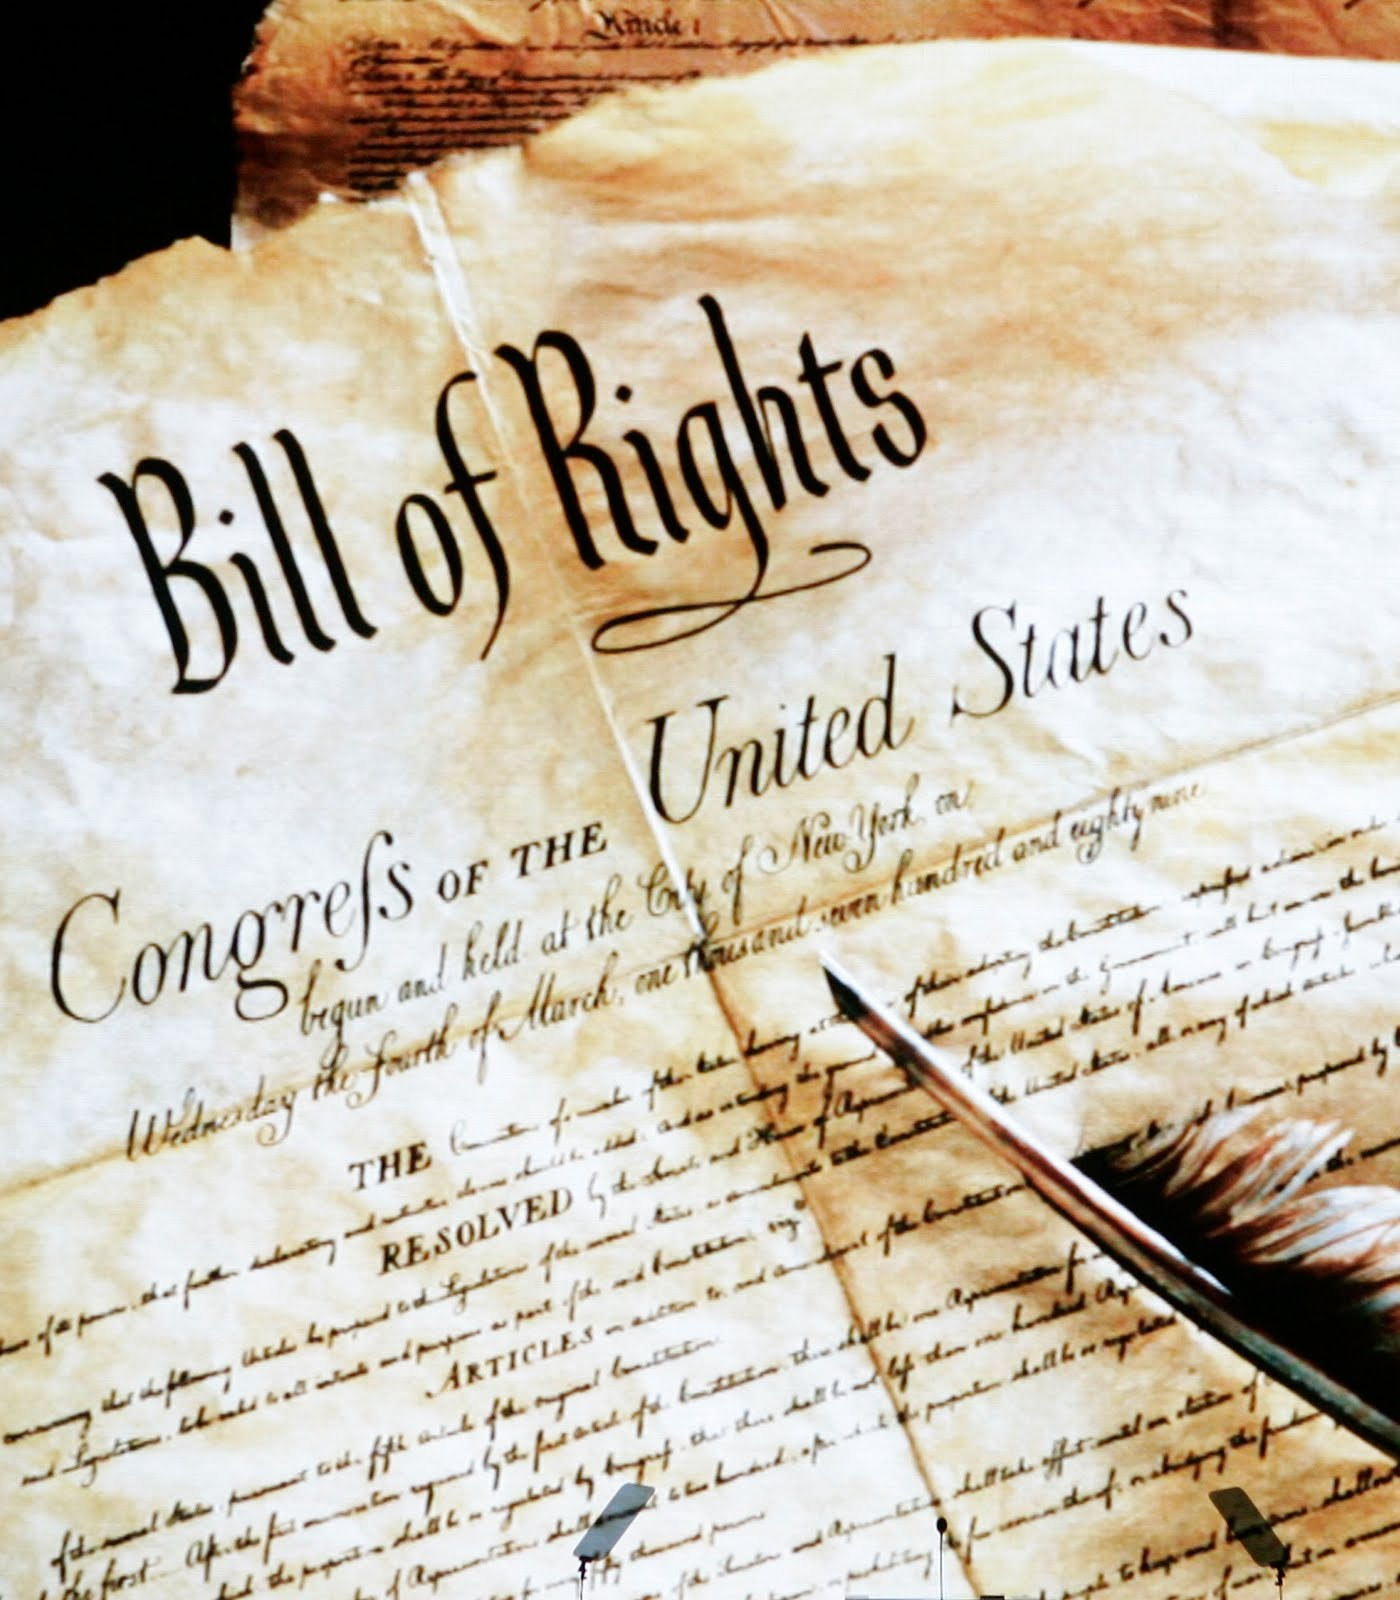 an analysis of the bill of rights in the united states and the ratification of the constitution in 1 Amendments 11-12 the amendments below were all proposed and later ratified after the initial constitution (1787) and bill of rights (1791) the date after the amendment is the ratification date.